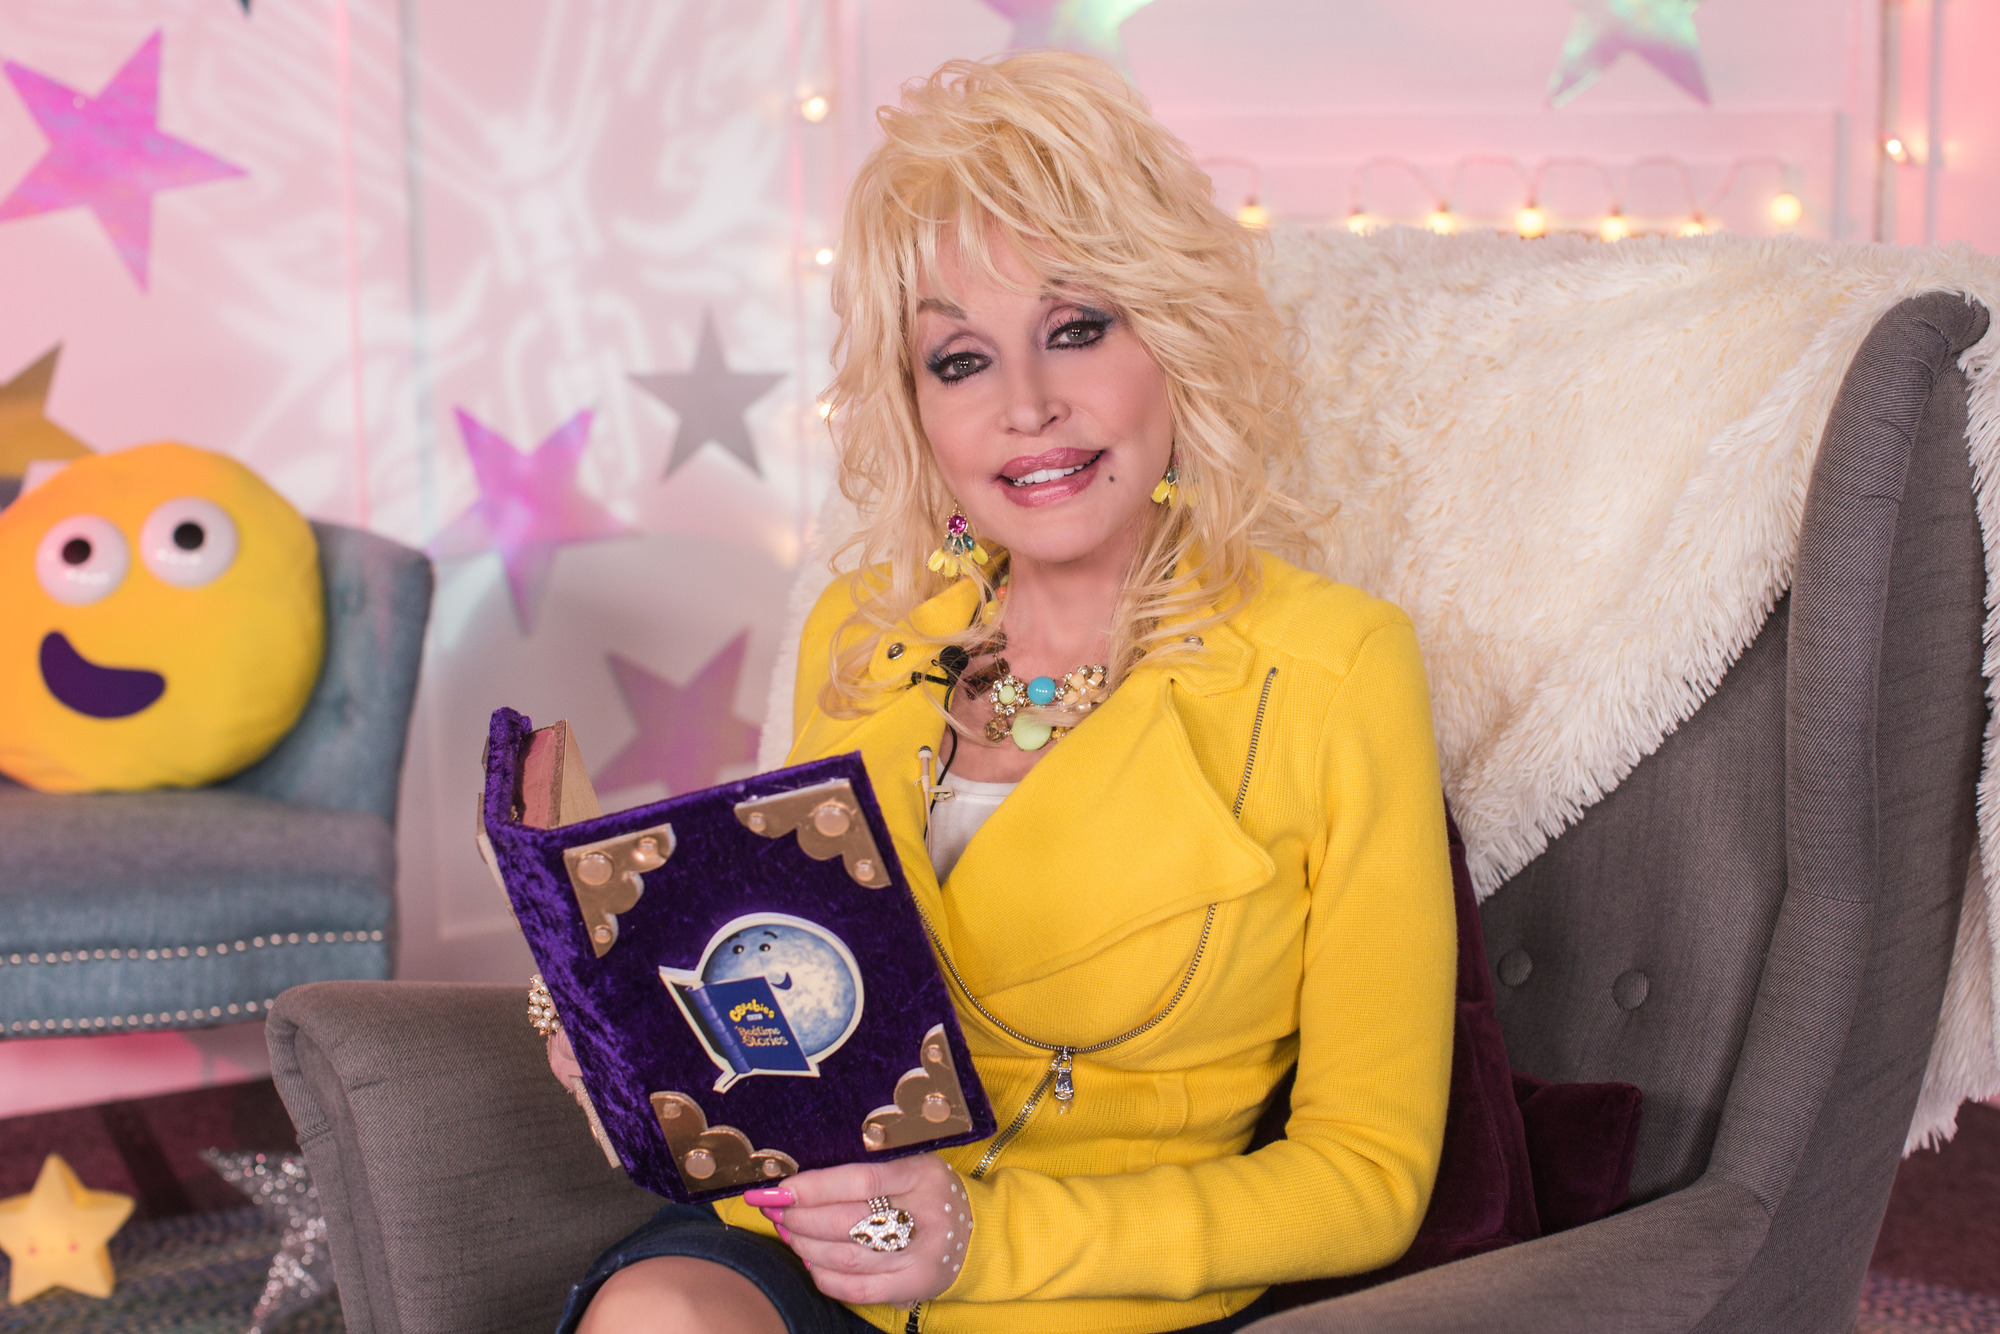 Dolly Parton's doing bedtime story stint